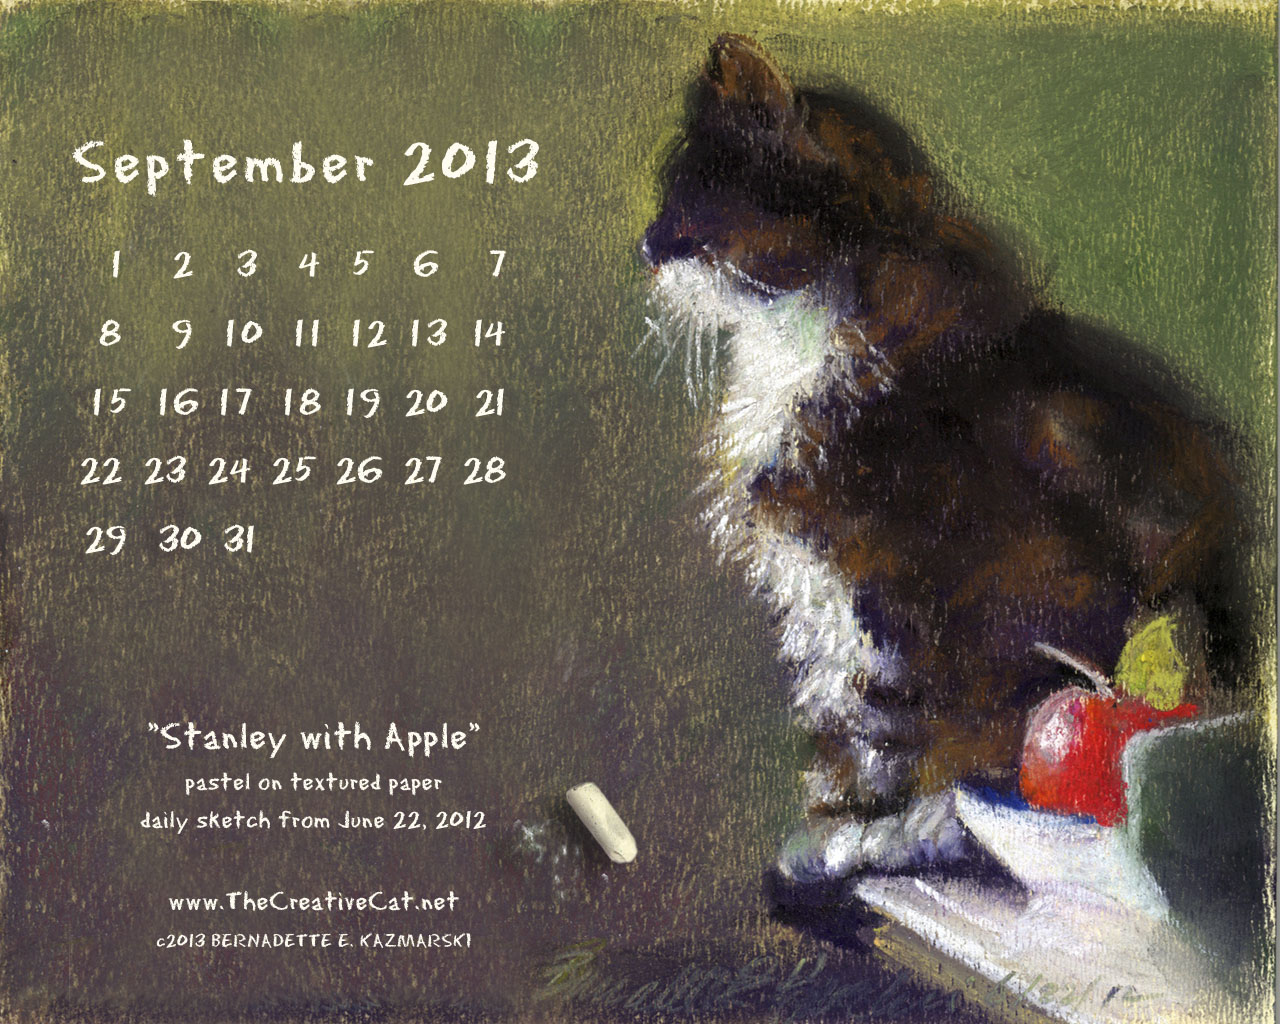 pastel sketch of cat with chalk